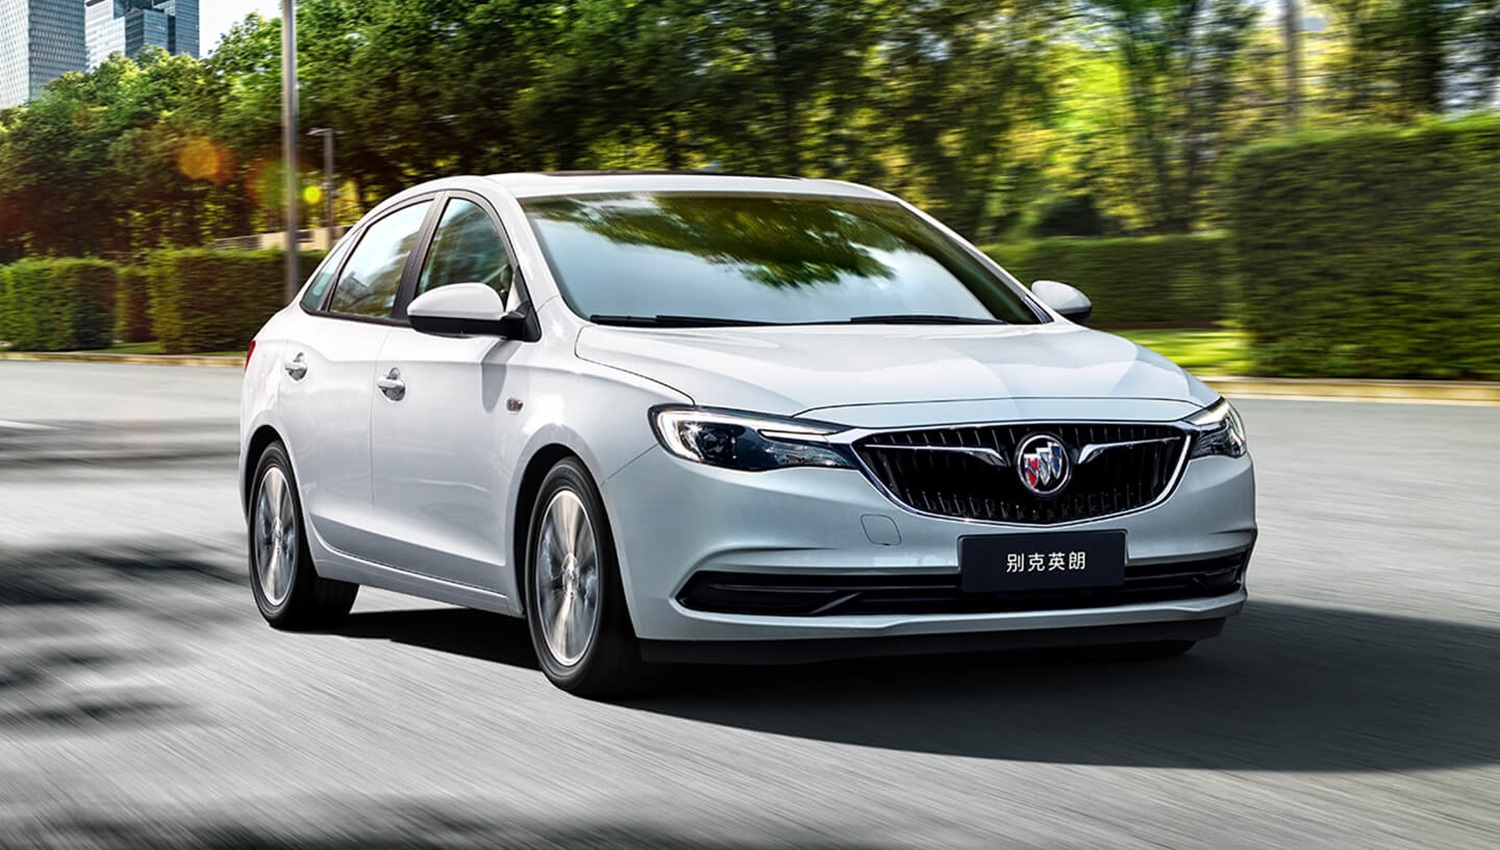 New 2021 Buick Excelle Gt Mild Hybrid Revealed | Gm Authority New 2021 Buick Verano Tire Size, Mpg, Gas Mileage